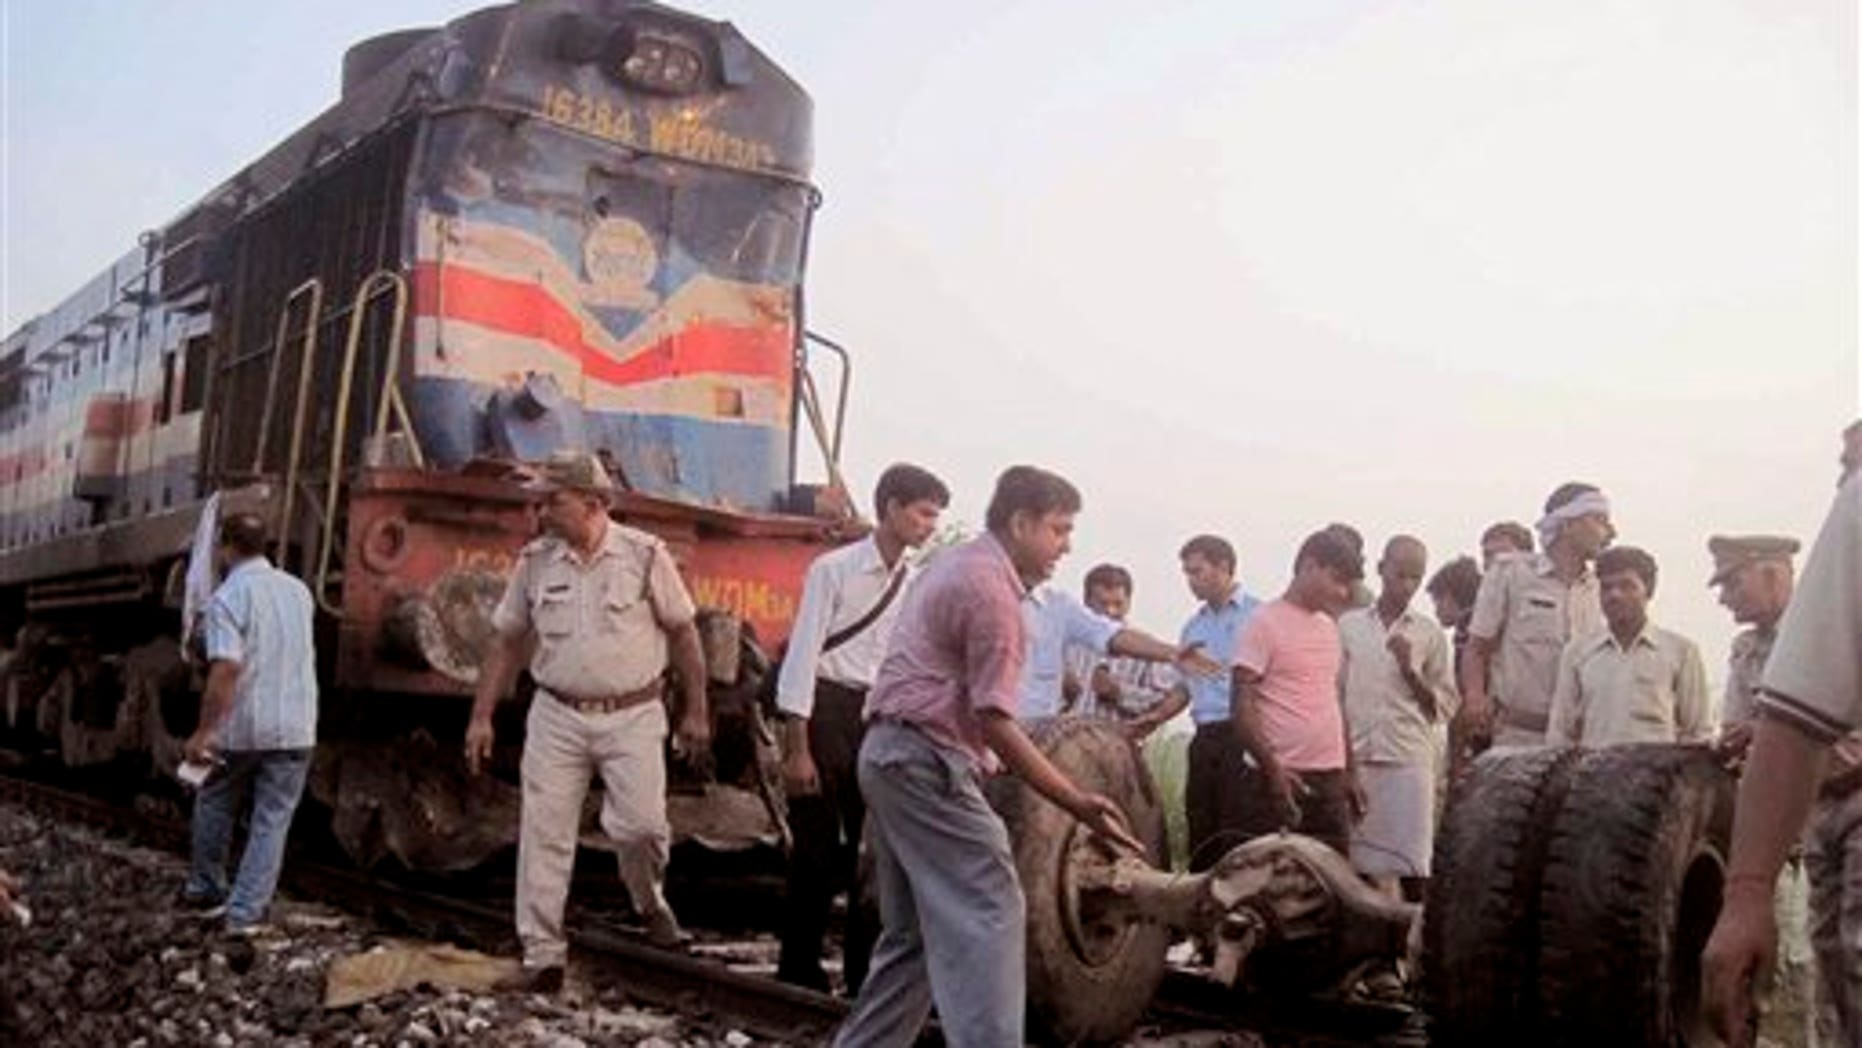 July 07: Volunteers help look for survivors and clear debris after a deadly collision between a train and a bus left 35 dead.